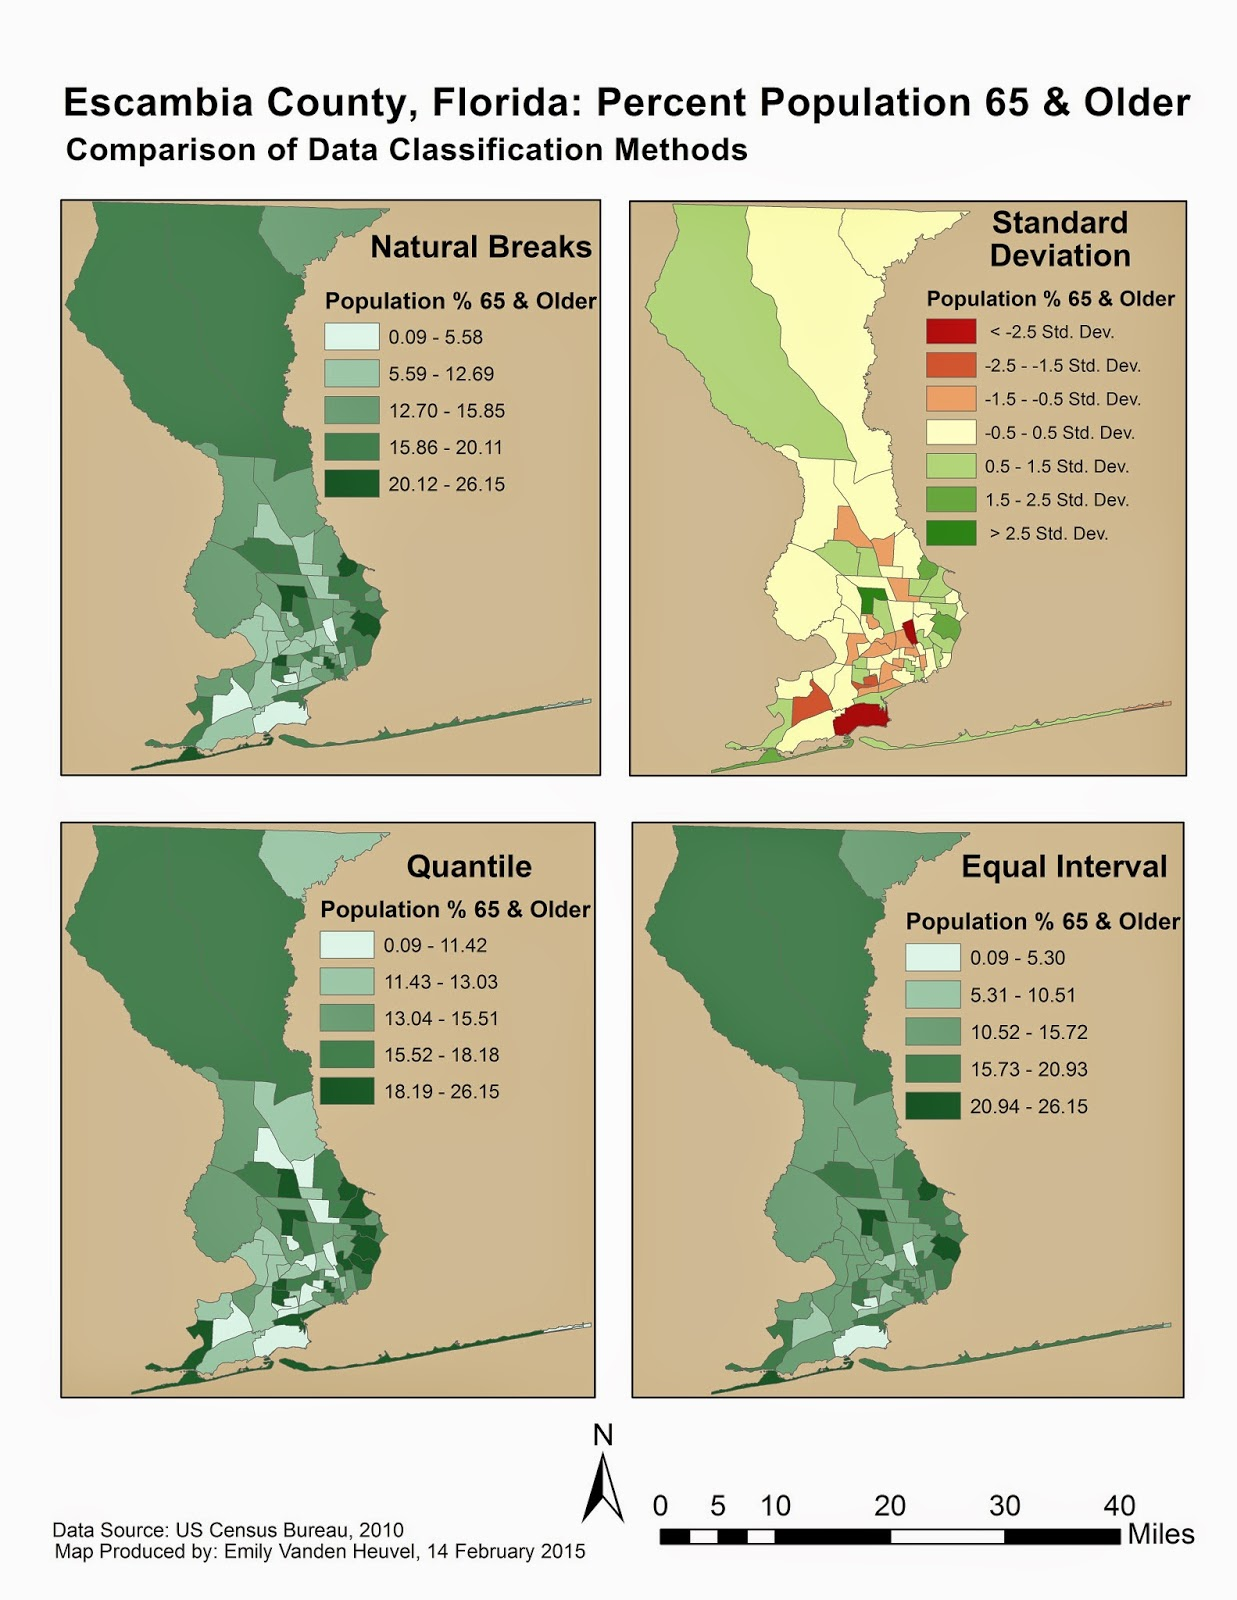 the technical term for this type of map is choropleth and there are several different ways the data categories or classes can be decided